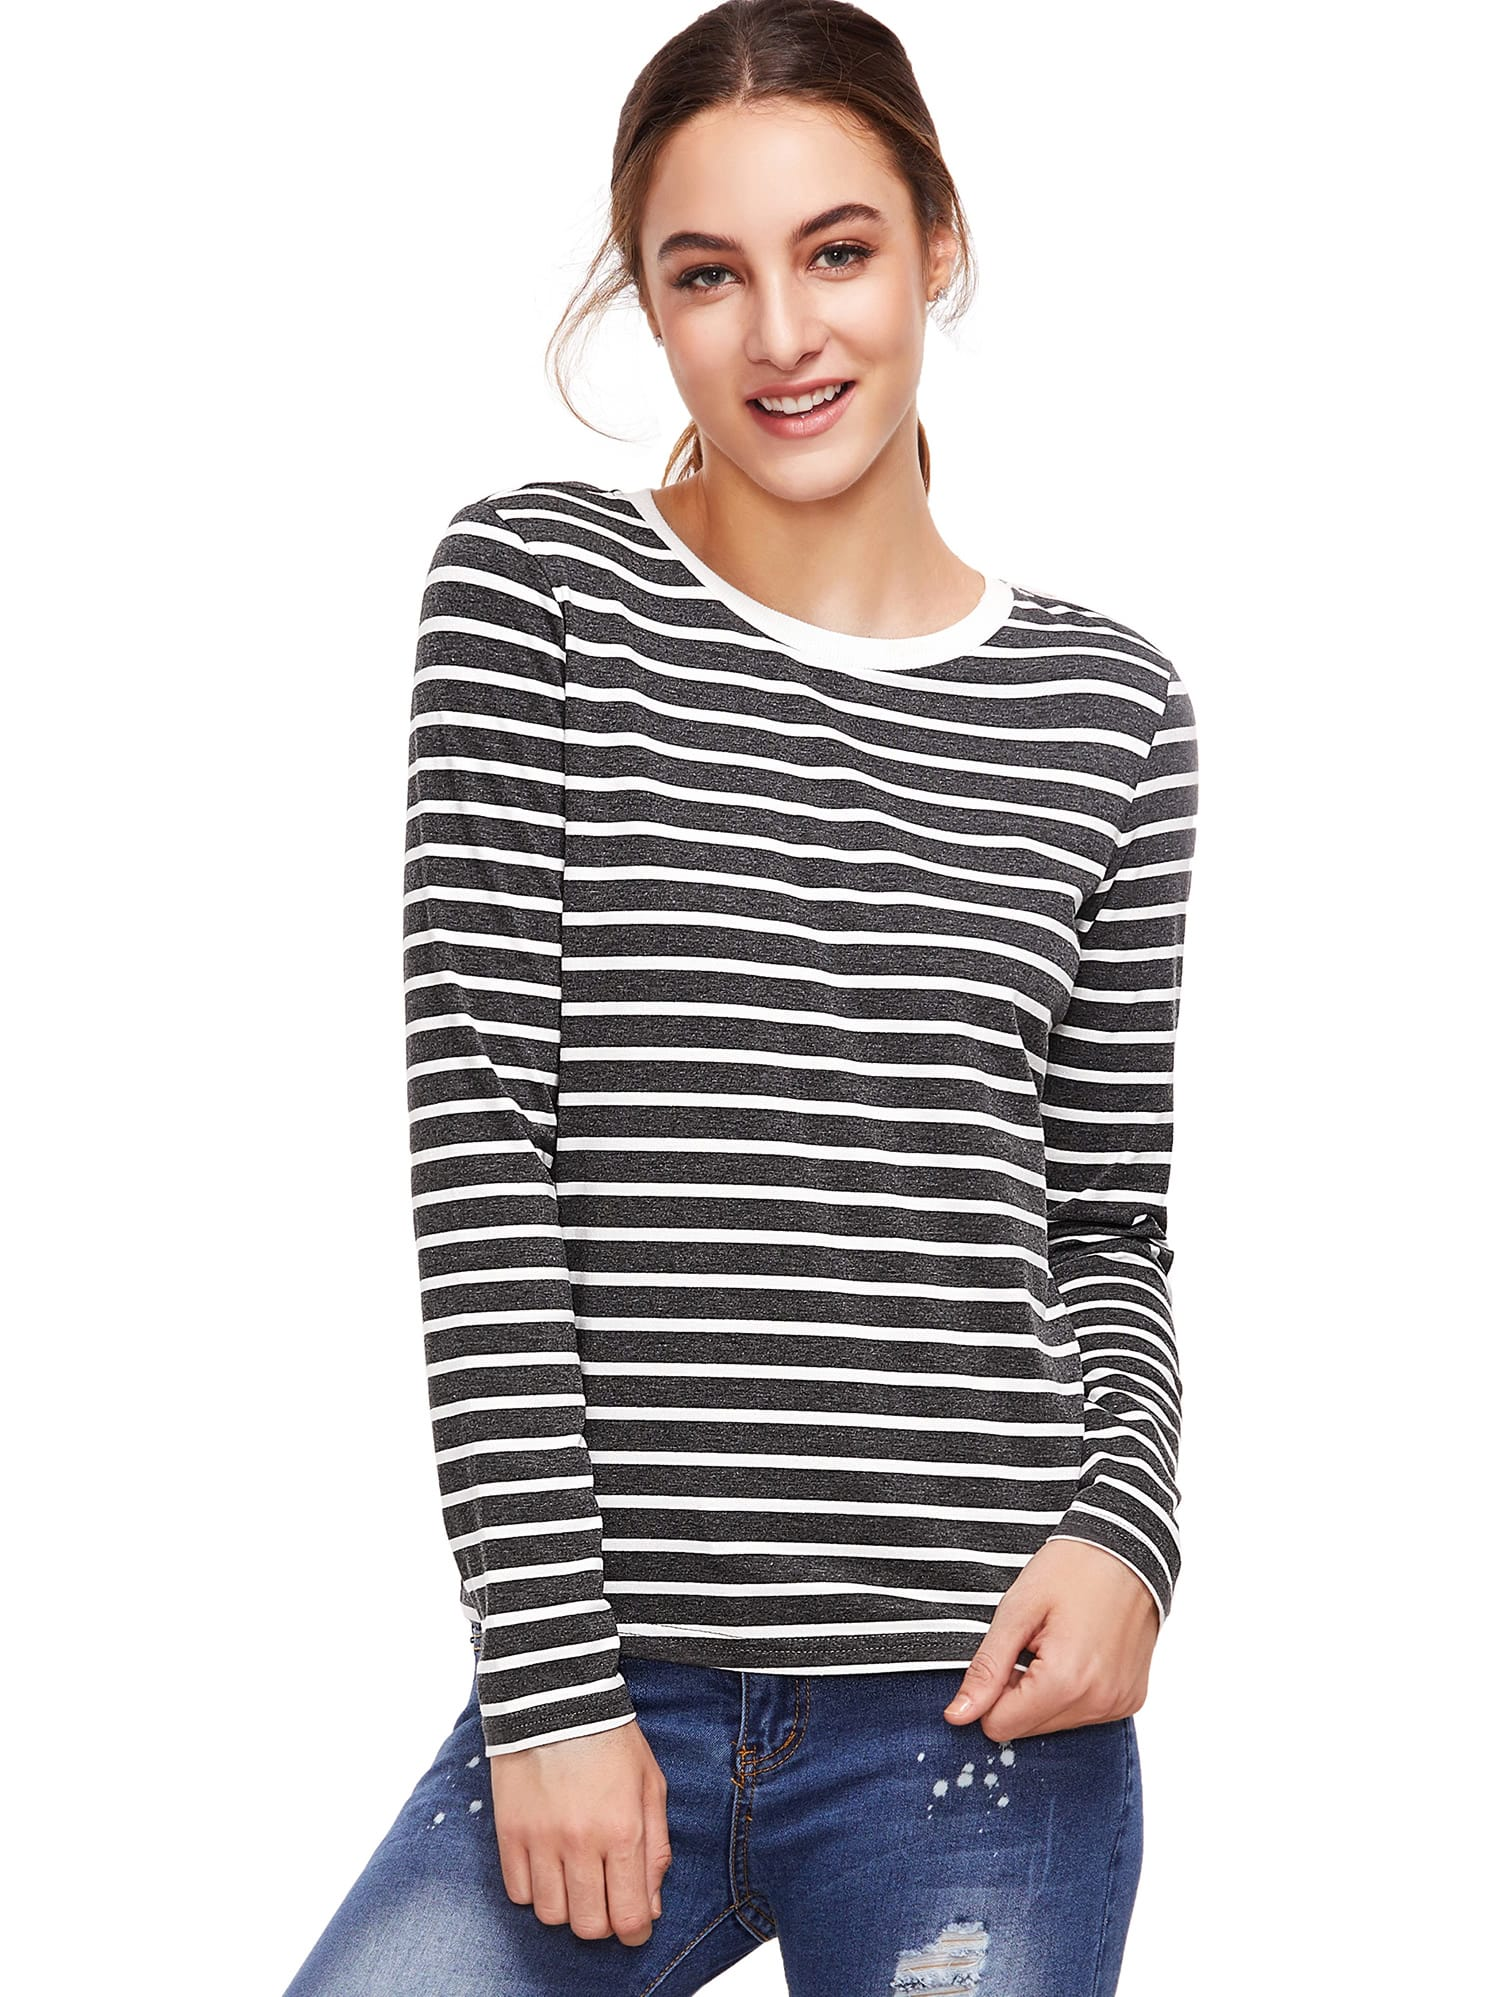 Grey Long Sleeve Striped T-Shirt tee160829576